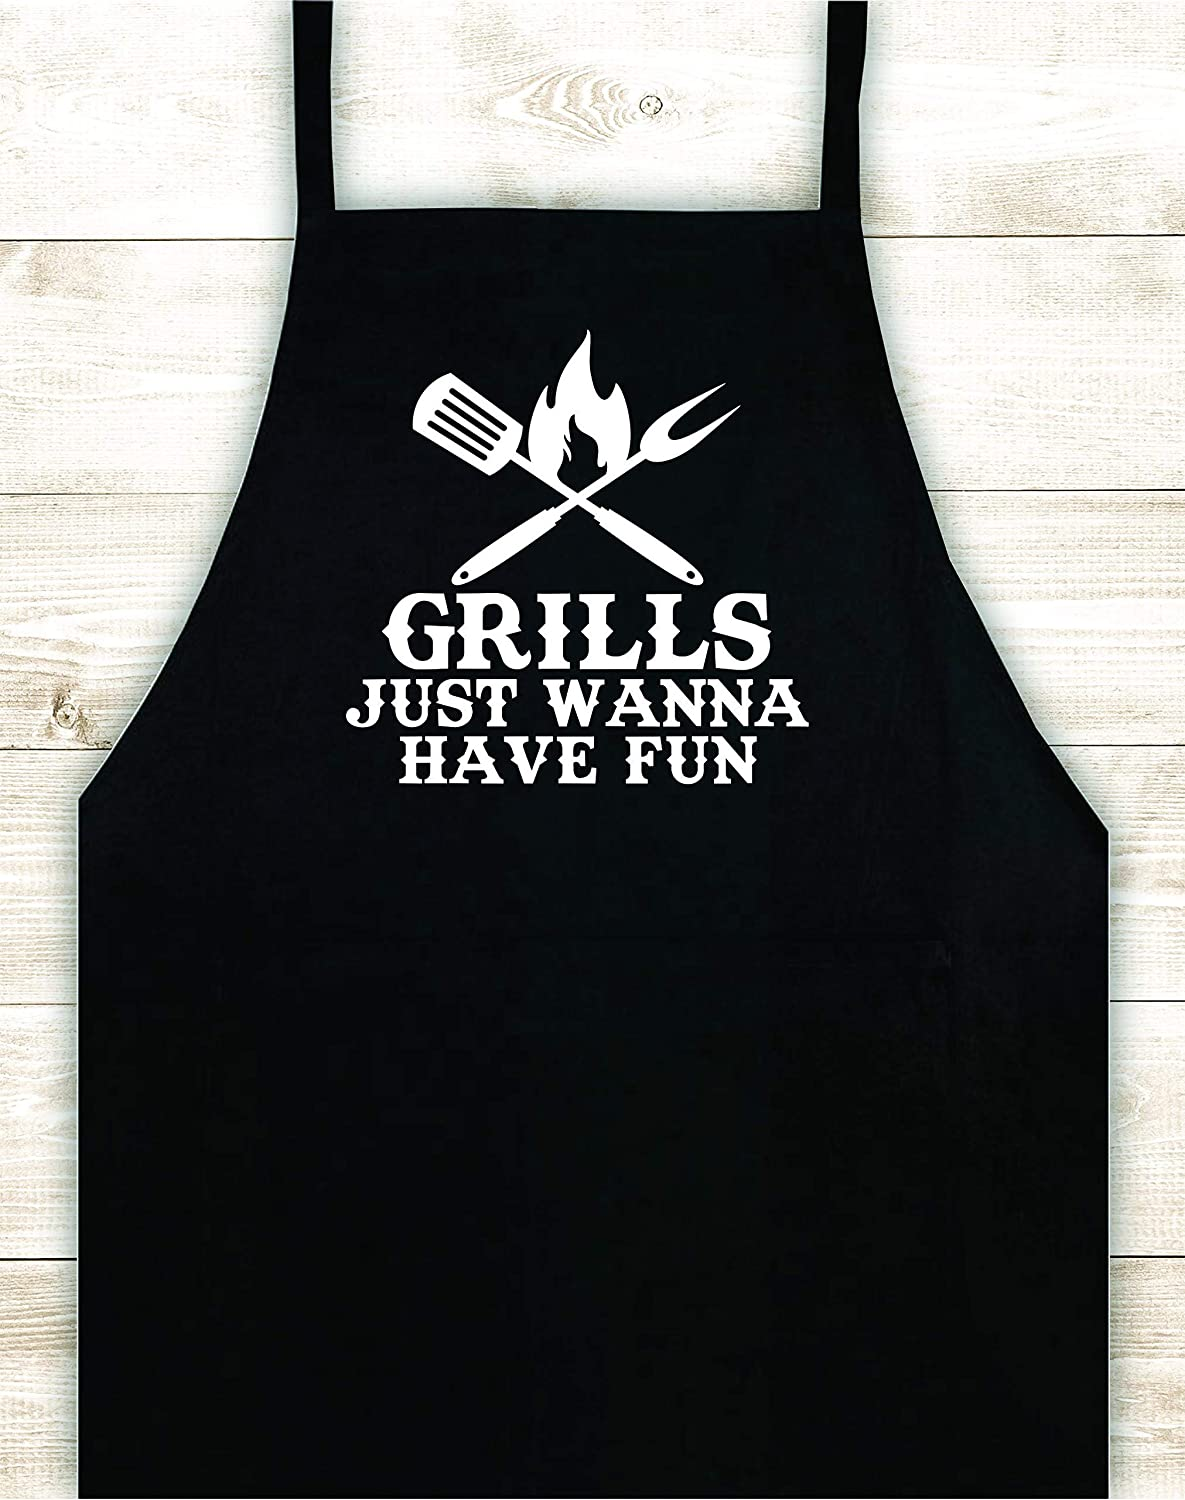 Grills Just Wanna Have Fun Apron Custom Design Heat Press Vinyl BBQ Cook Bake Baking Grill Barbeque Chef Funny Gift Cow Steak Men Pig Party Bake Girls Food Dad Father Gift Birthday Grandmpa